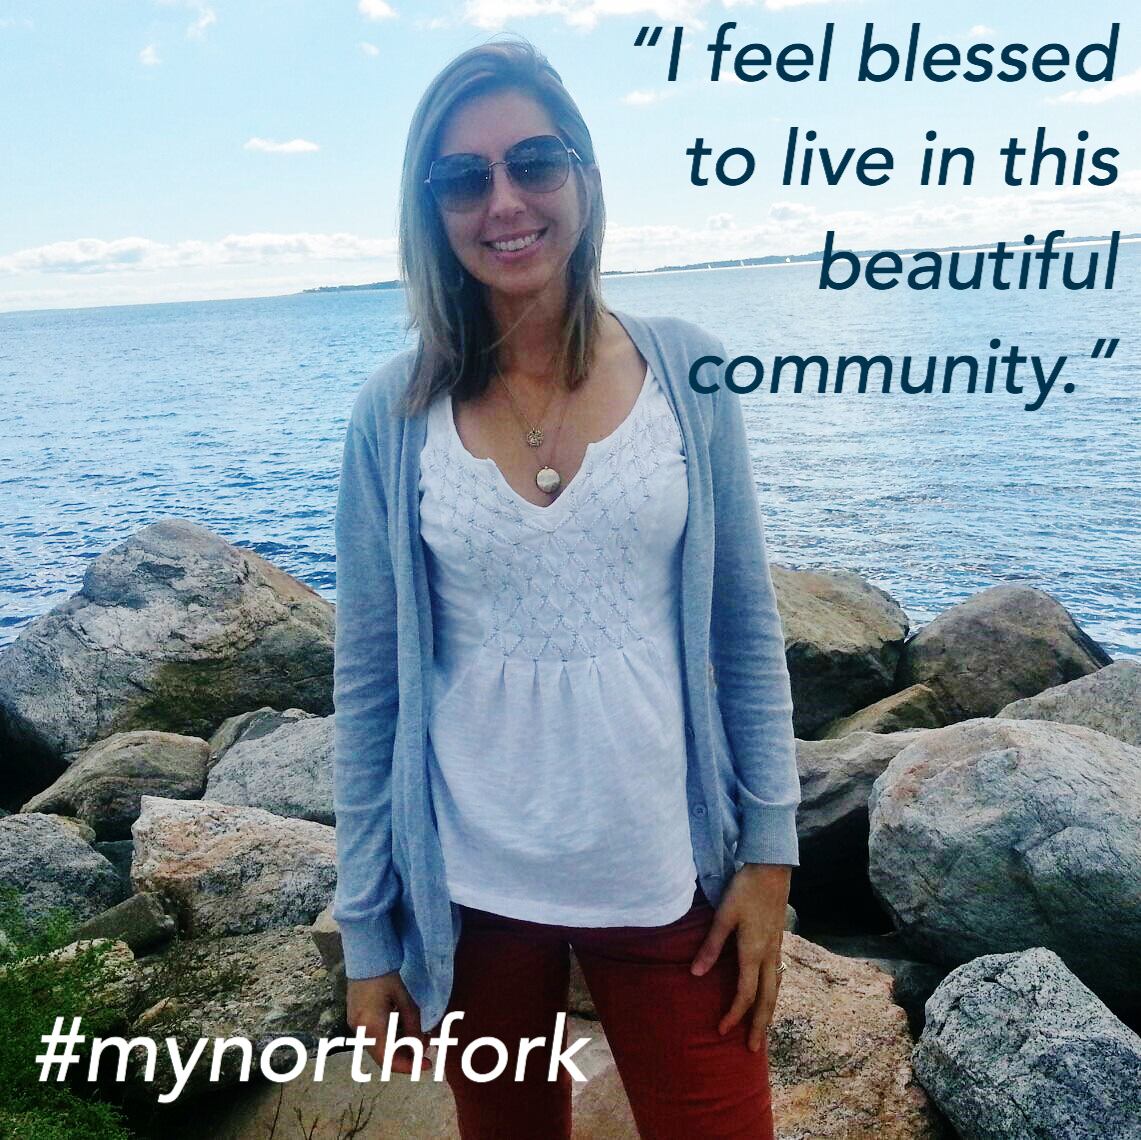 """#mynorthfork 12/15/2017 - 12/15/2017 - """"I have been living on the North Fork for the past 5 years. I was first introduced to the """"east end"""" in 2005 when I was still dating my husband. That's when I fell in love with this charming community and began dreaming of living here one day. Now I get to enjoy all the North Fork has to offer! I love spending summer afternoons at the beach or sometimes, just riding my bike around the neighborhood.One of my favorite thigs to do is to shop for local produce. We have so many great resources available to us in our community. It is always fun to visit all the different farm stands as well as the local shops and restaurants.What I treasure the most about the North Fork is the amazing people I have met. I feel blessed to live in this beautiful community and to have made so many new friends."""" (Owner of North Fork Naturals)"""